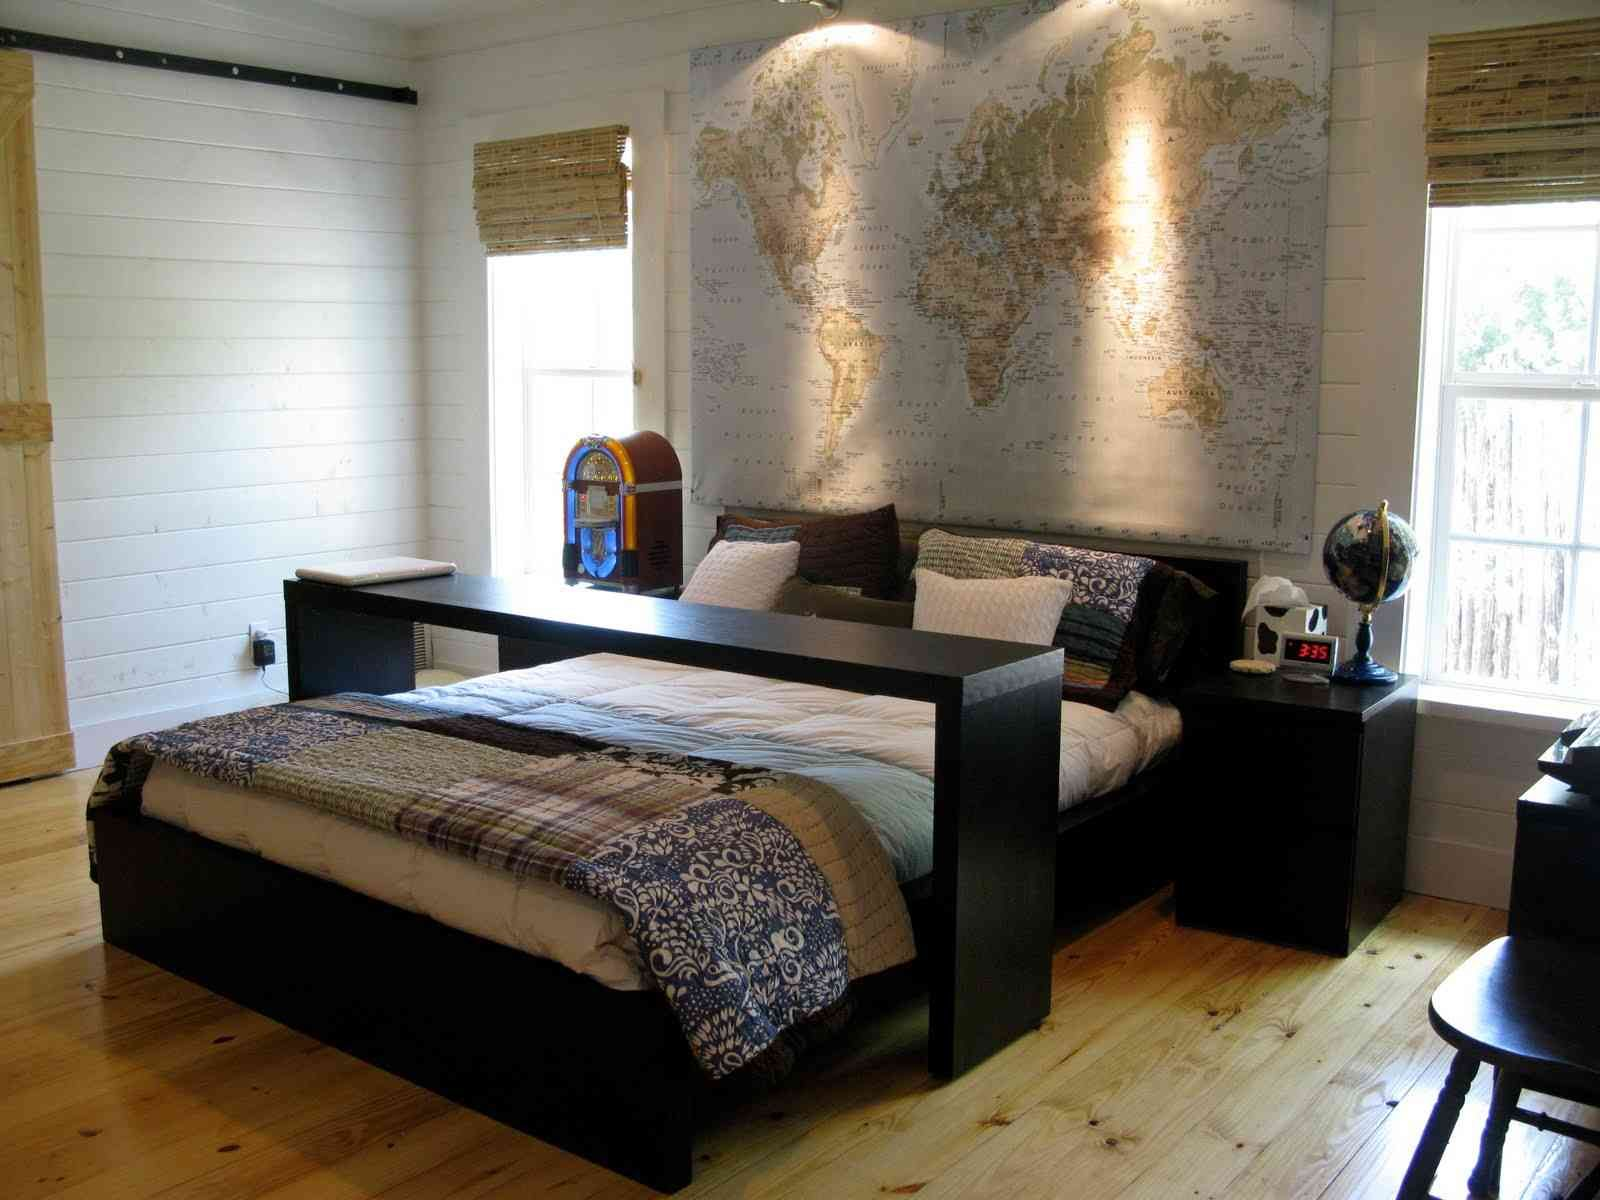 126 best images about ikea bedrooms on pinterest - Ikea Bedrrom